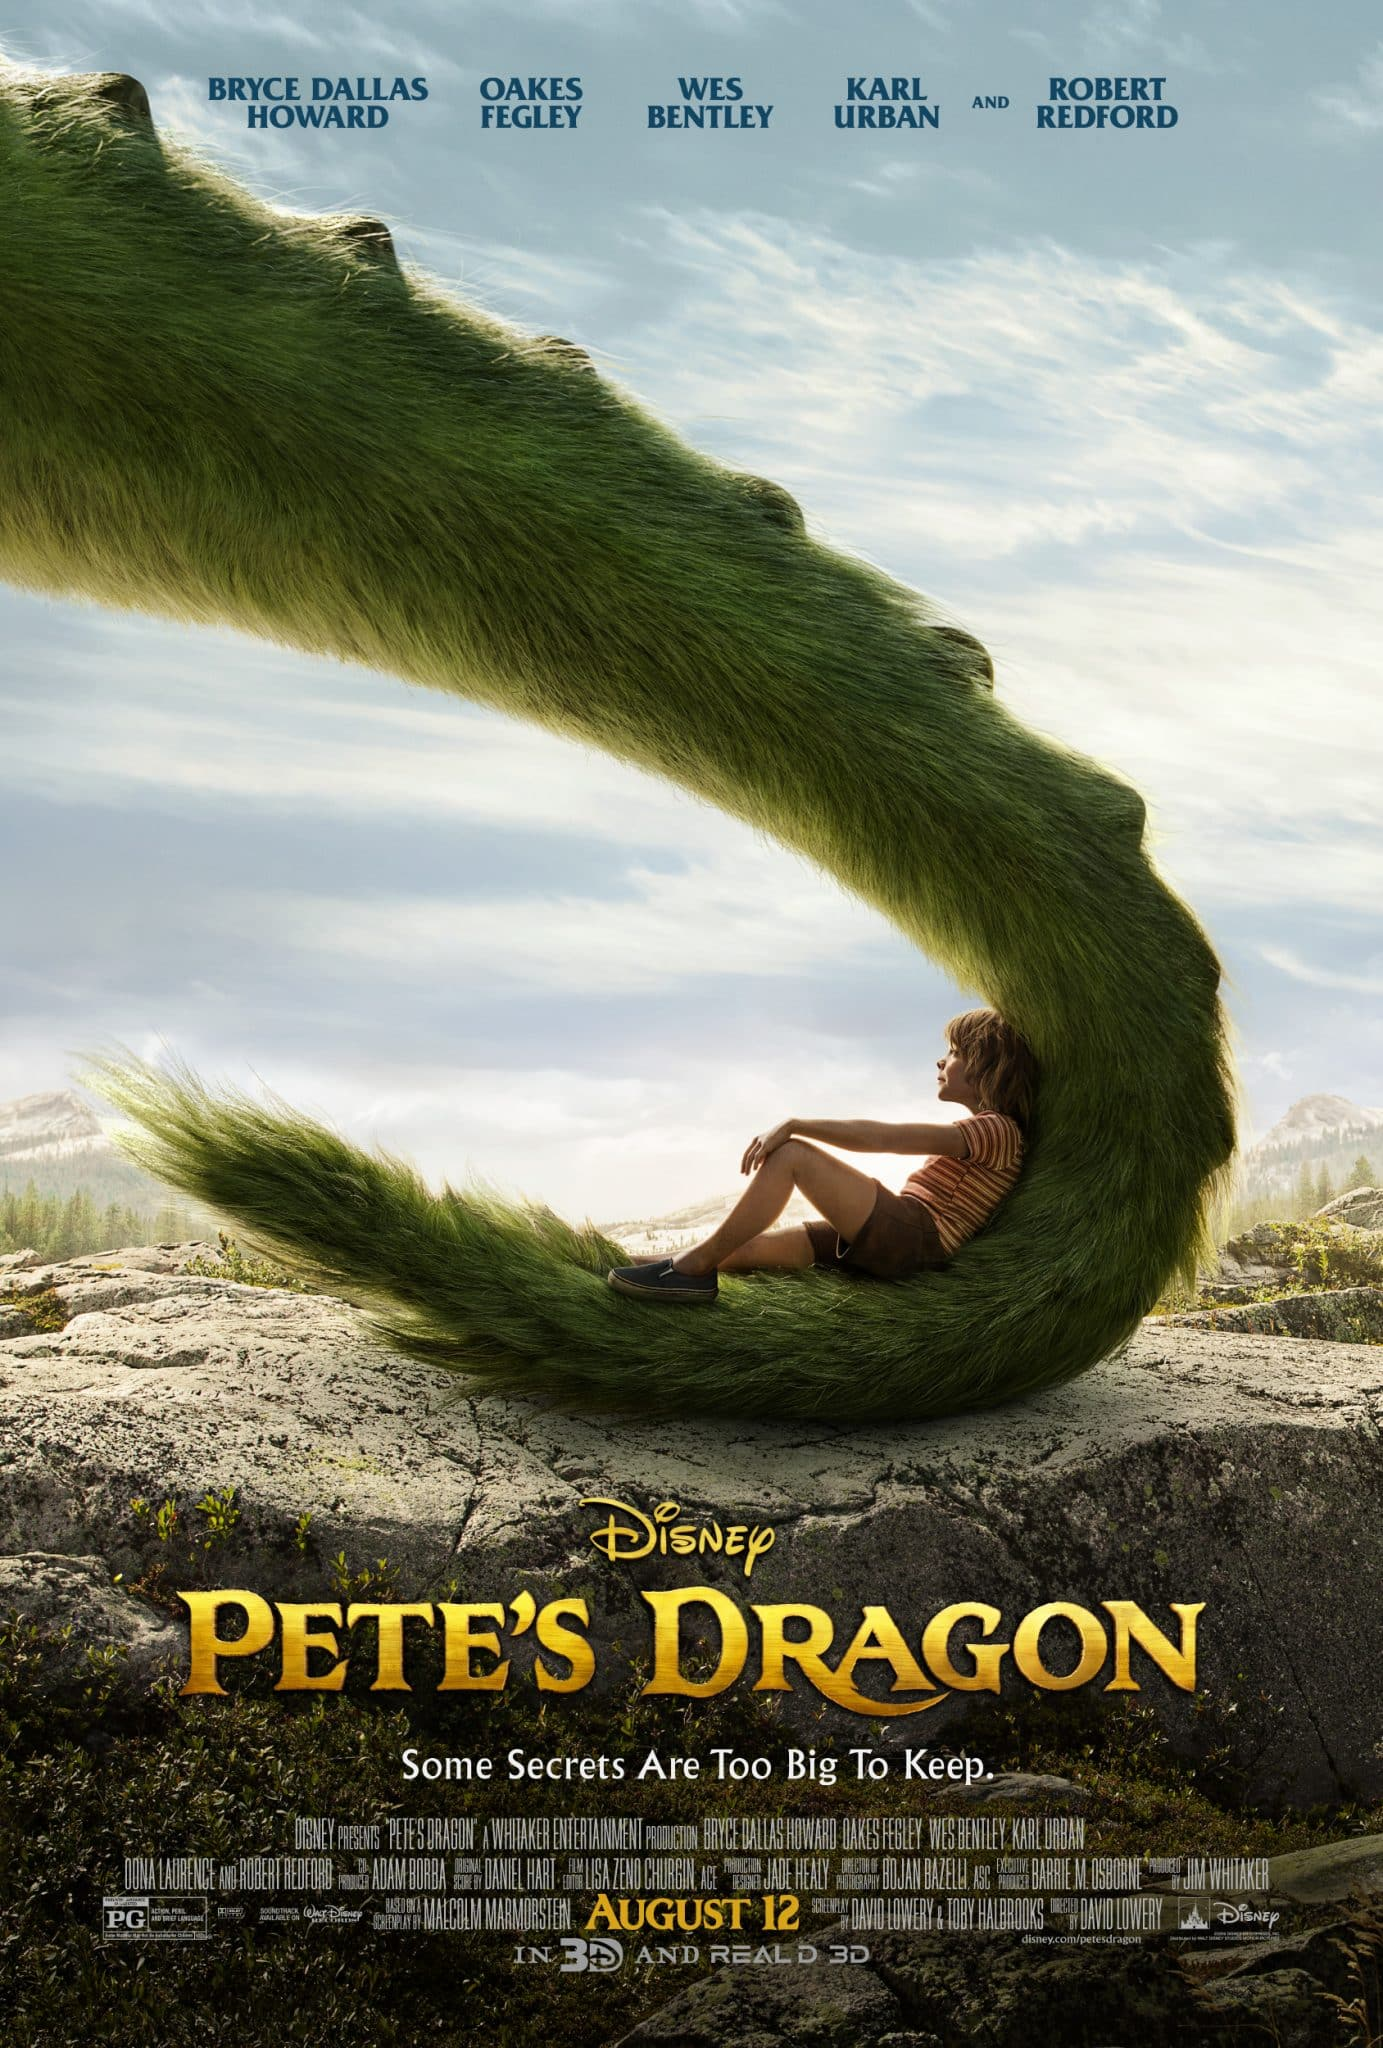 Disney's Pete's Dragon in Theaters August 12 | ThisNThatwithOlivia.com #PetesDragon